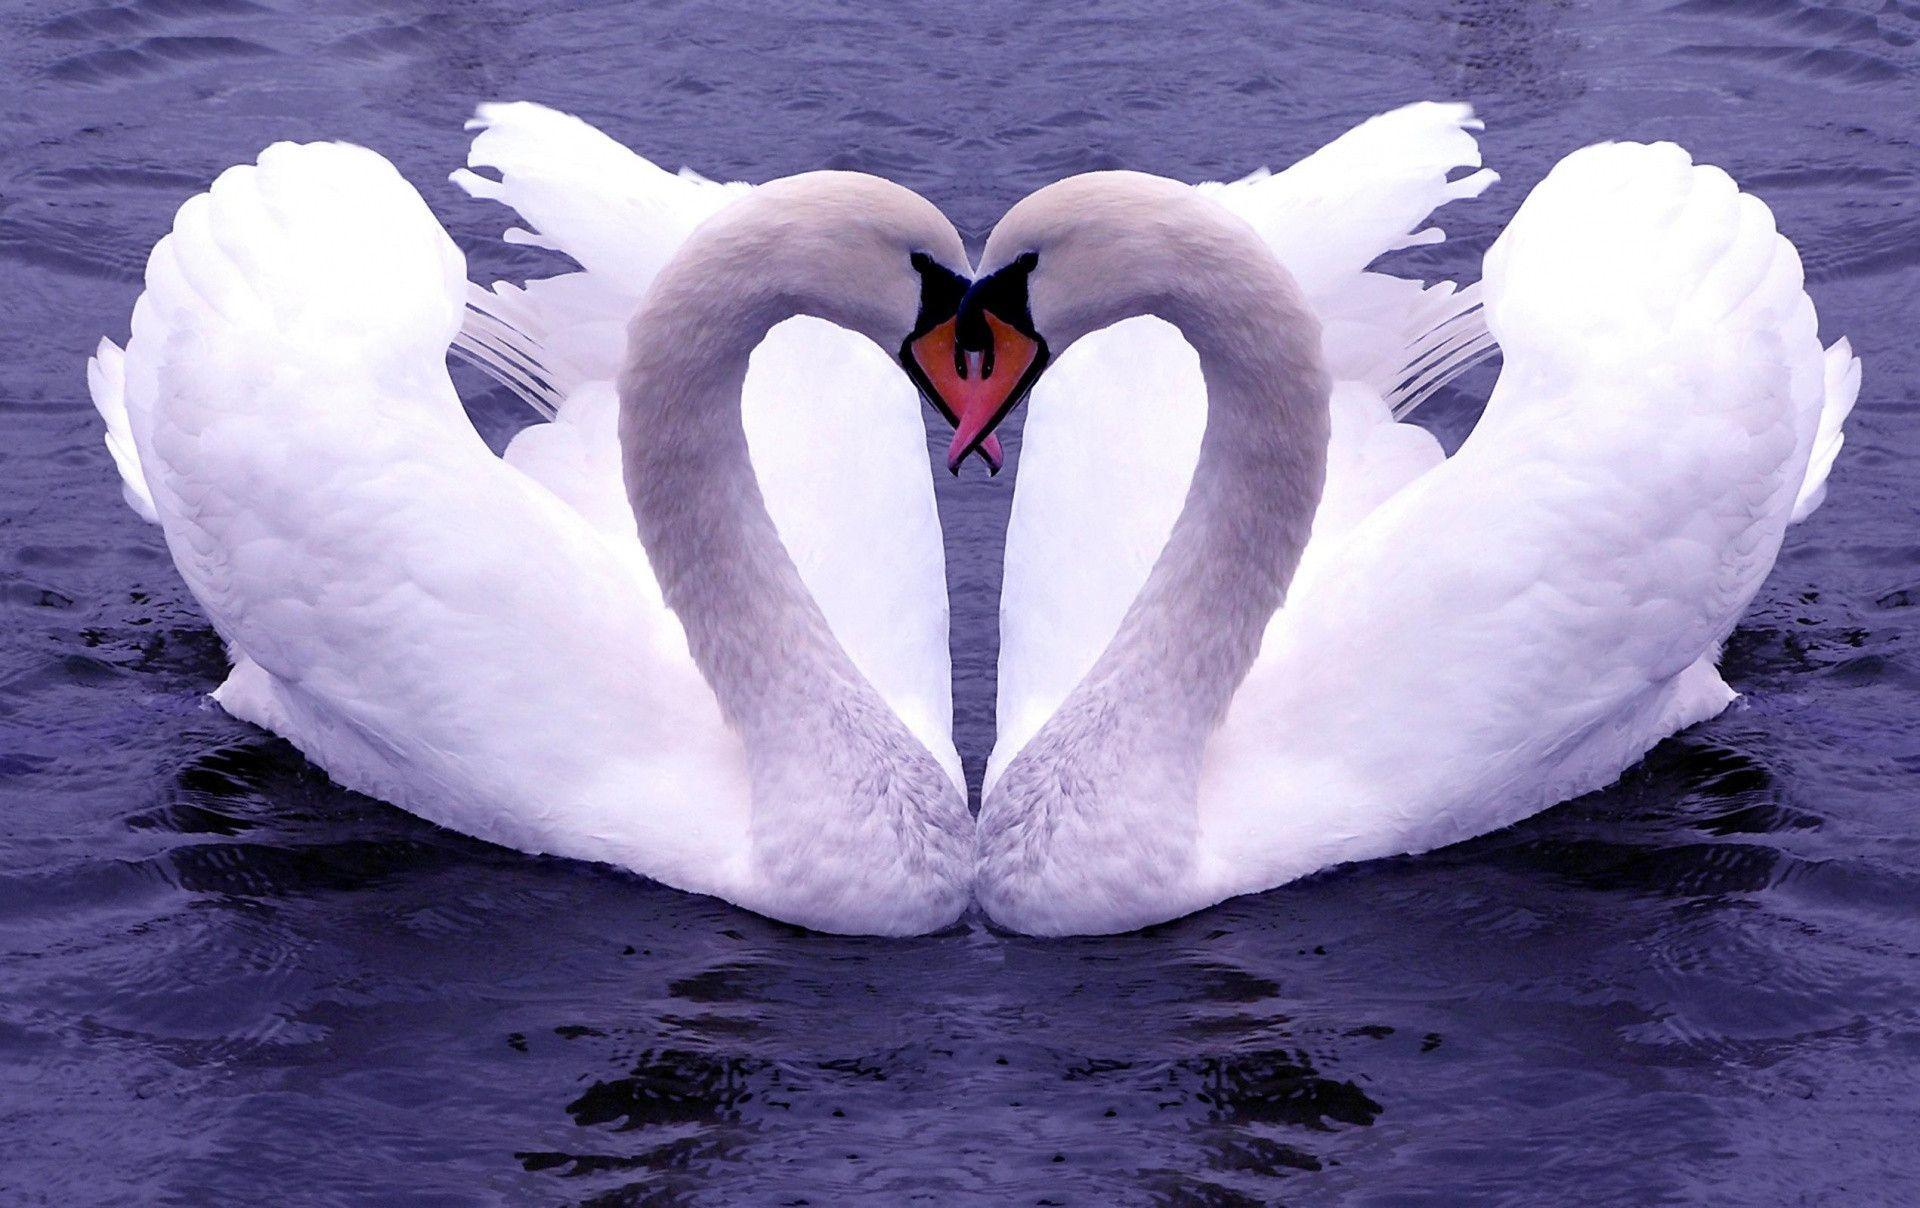 Love Birds Wallpaper Images : Wallpapers Love Birds - Wallpaper cave